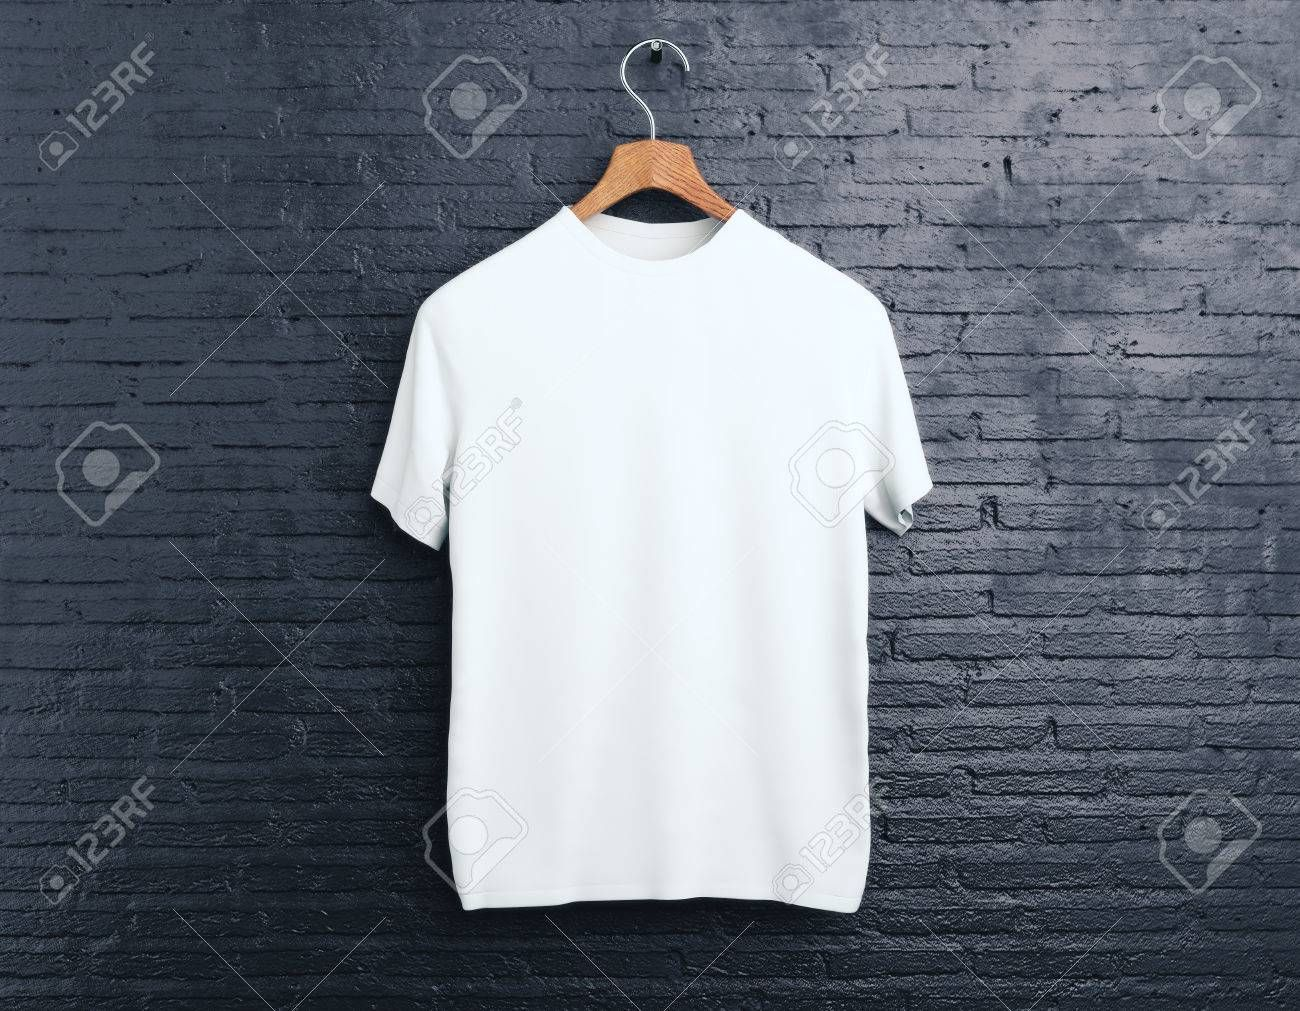 Download Wooden Hanger With Empty White T Shirt Hanging On Dark Brick Background Shopping Concept Mock Up 3d Rendering Aff Clothes Organic Cotton T Shirts Shirts